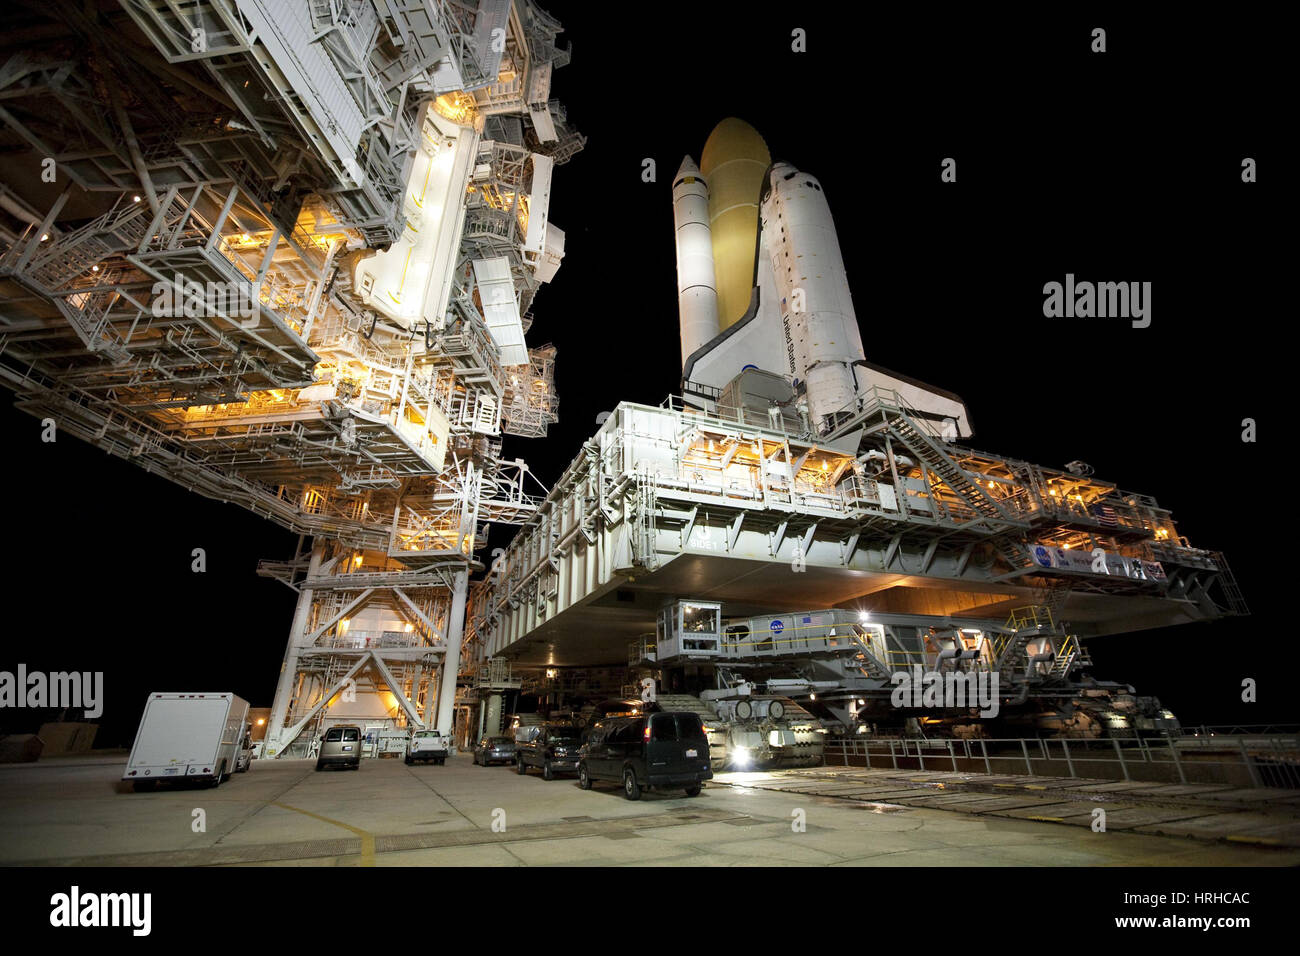 STS-131, la navette spatiale Discovery, 2010 Photo Stock